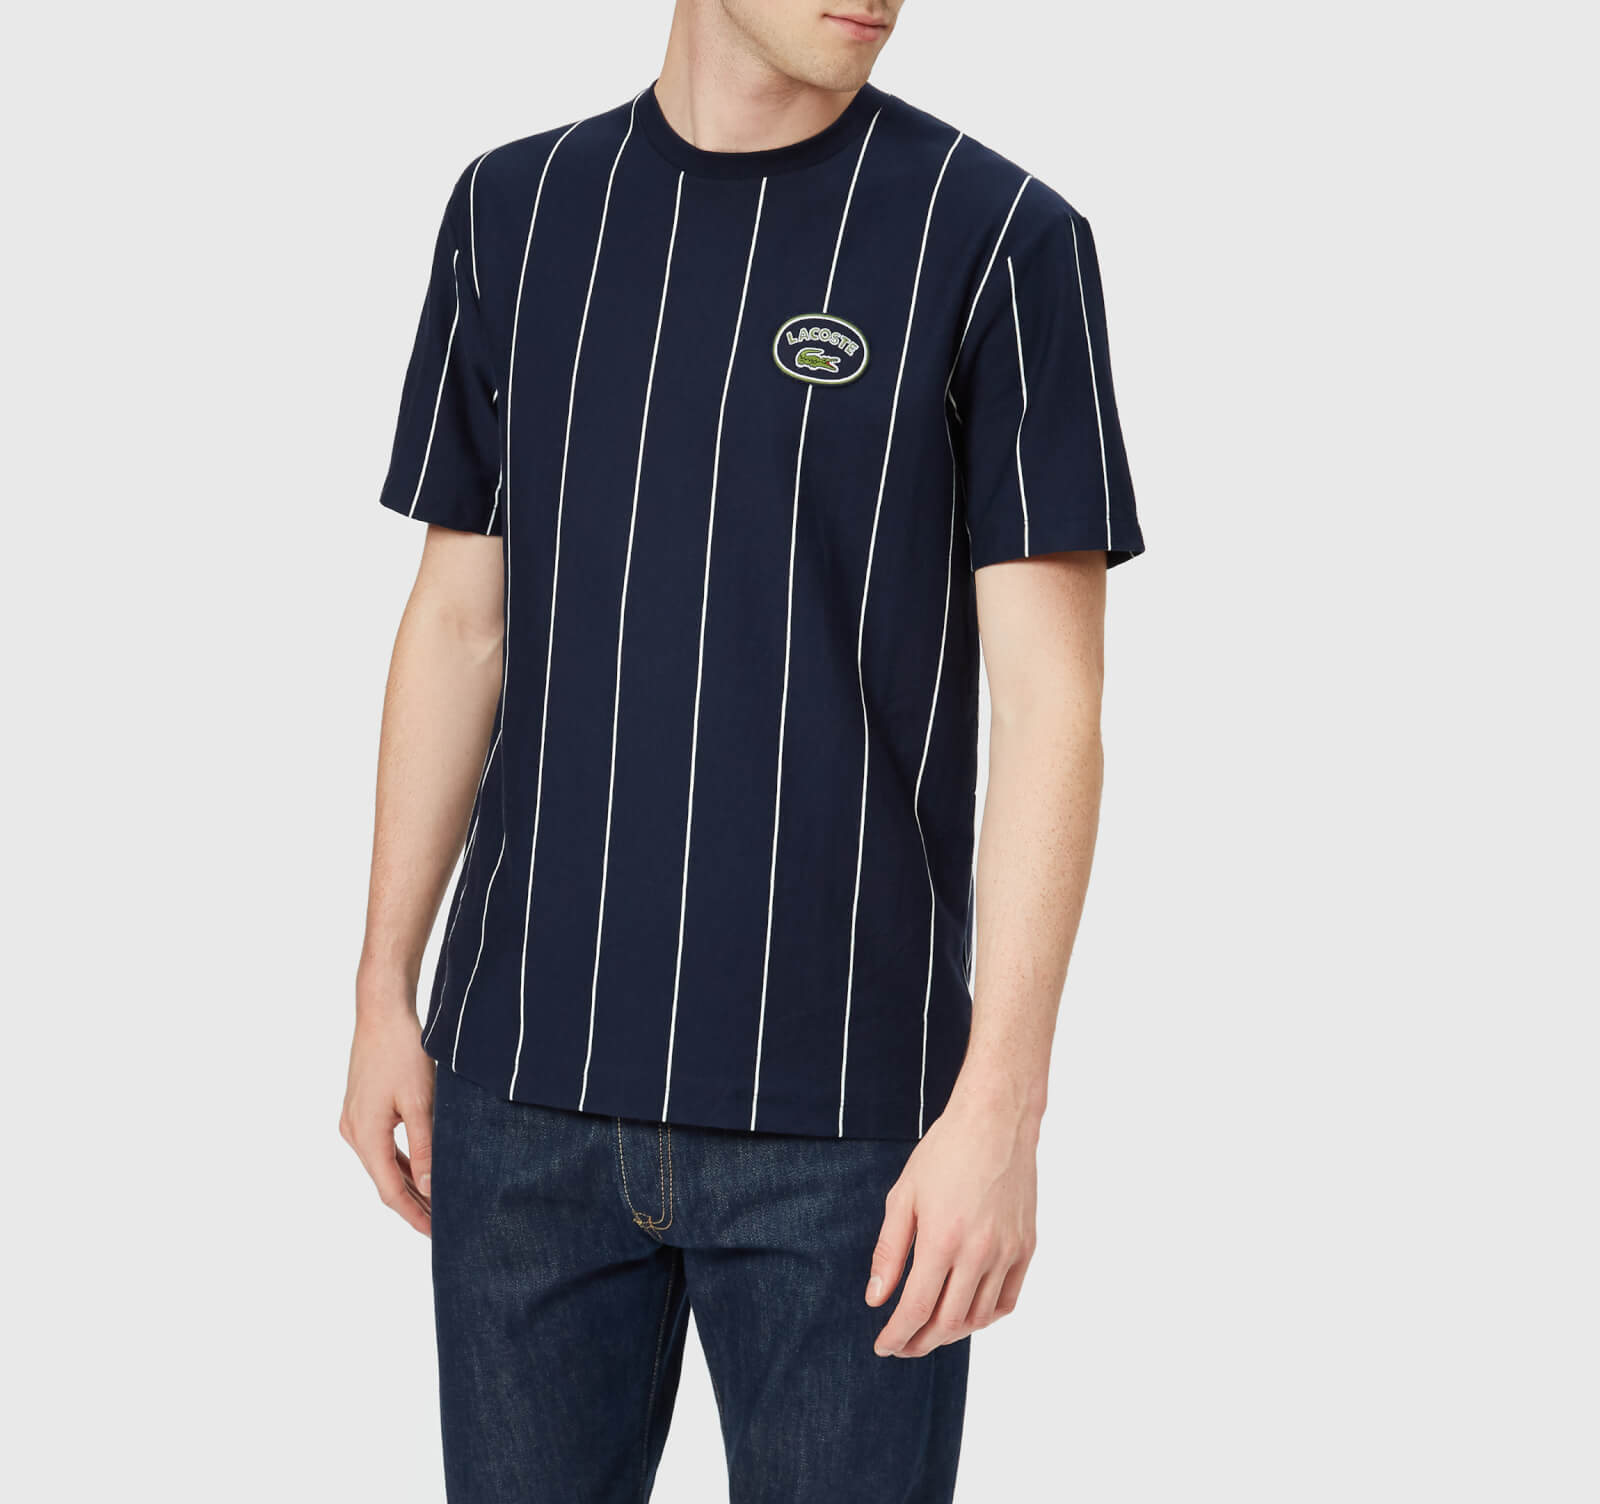 b3fe47eadc02a Lacoste Men s Vertical Stripe Patch Logo T-Shirt - Navy White - Free UK  Delivery over £50